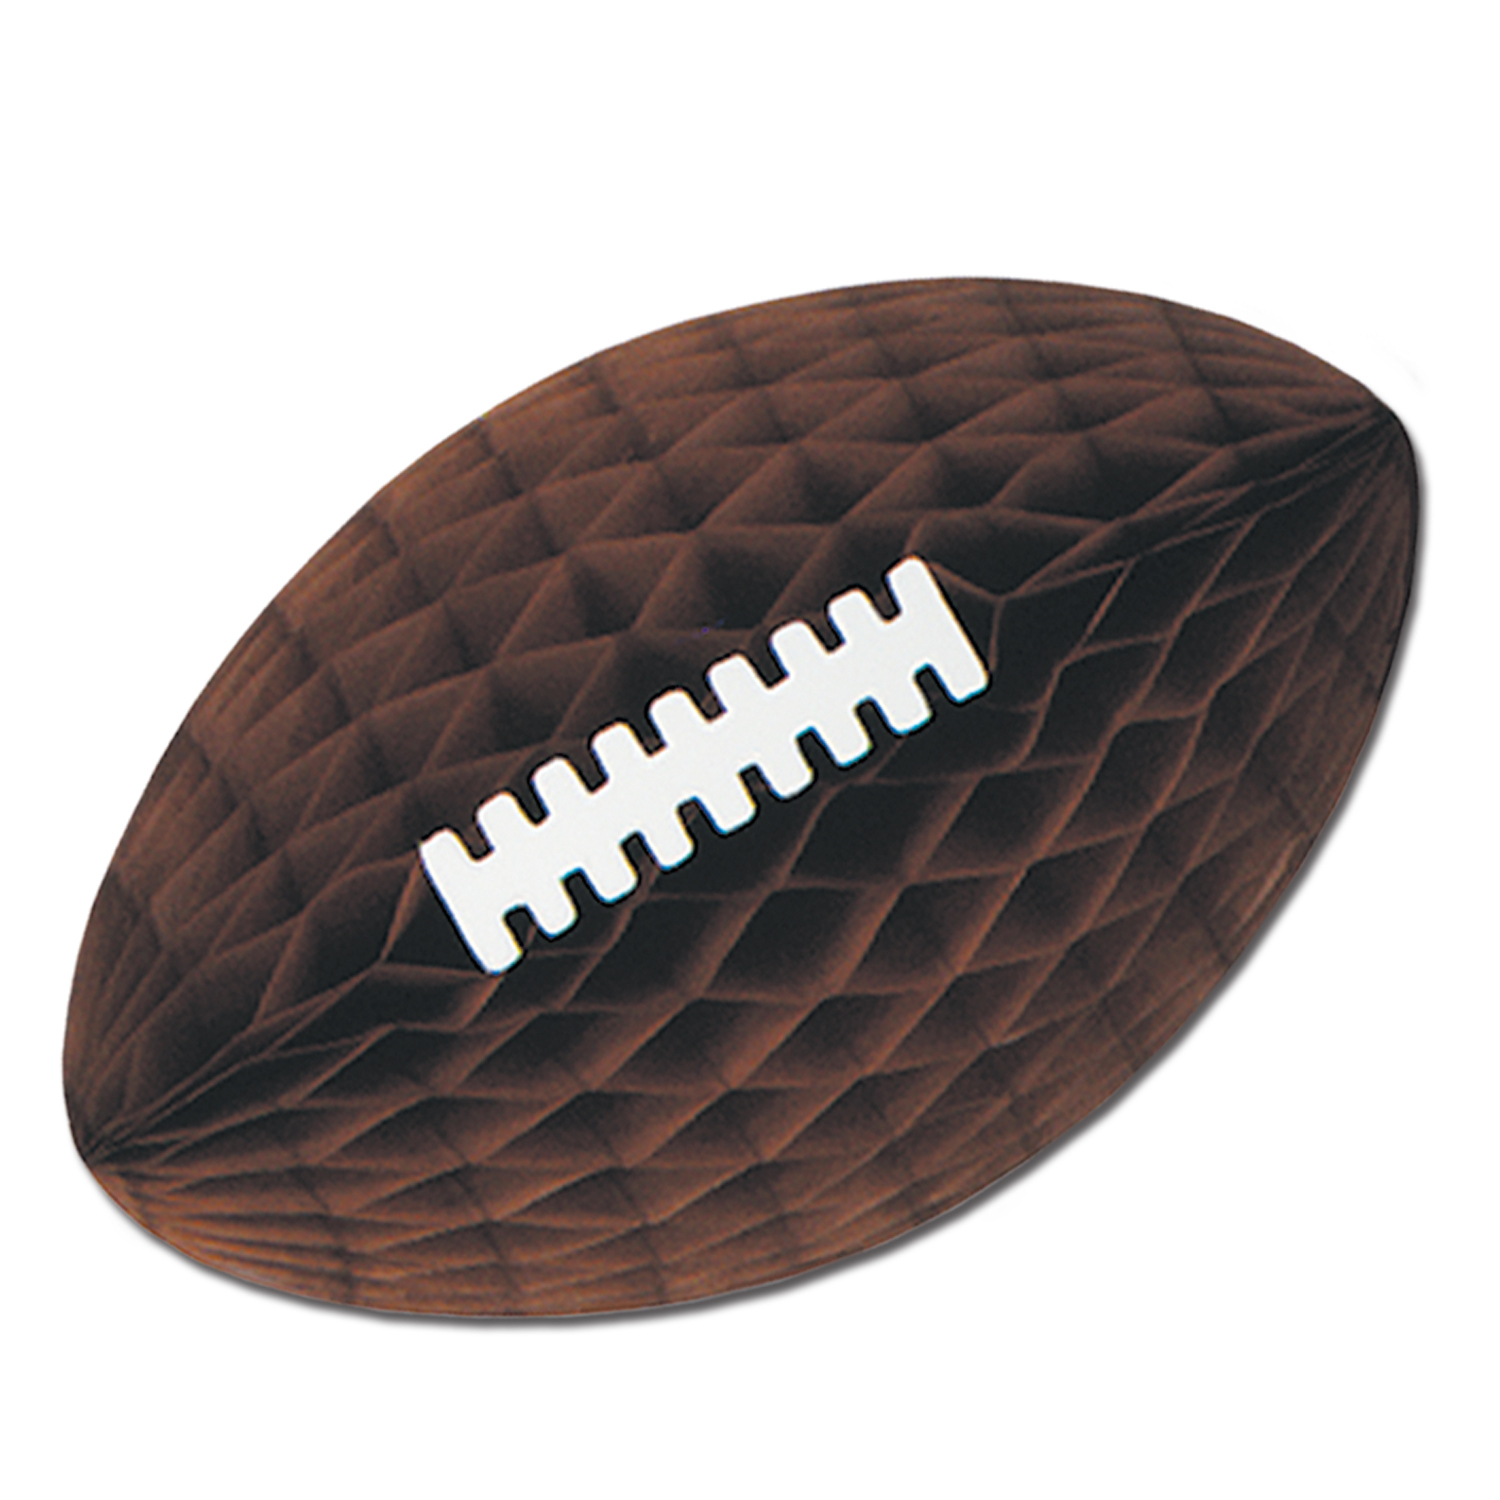 "28"" Tissue Football w/Laces (Pack of 6) Tissue Football with Laces, football, decoration, brown, wholesale, inexpensive, bulk"